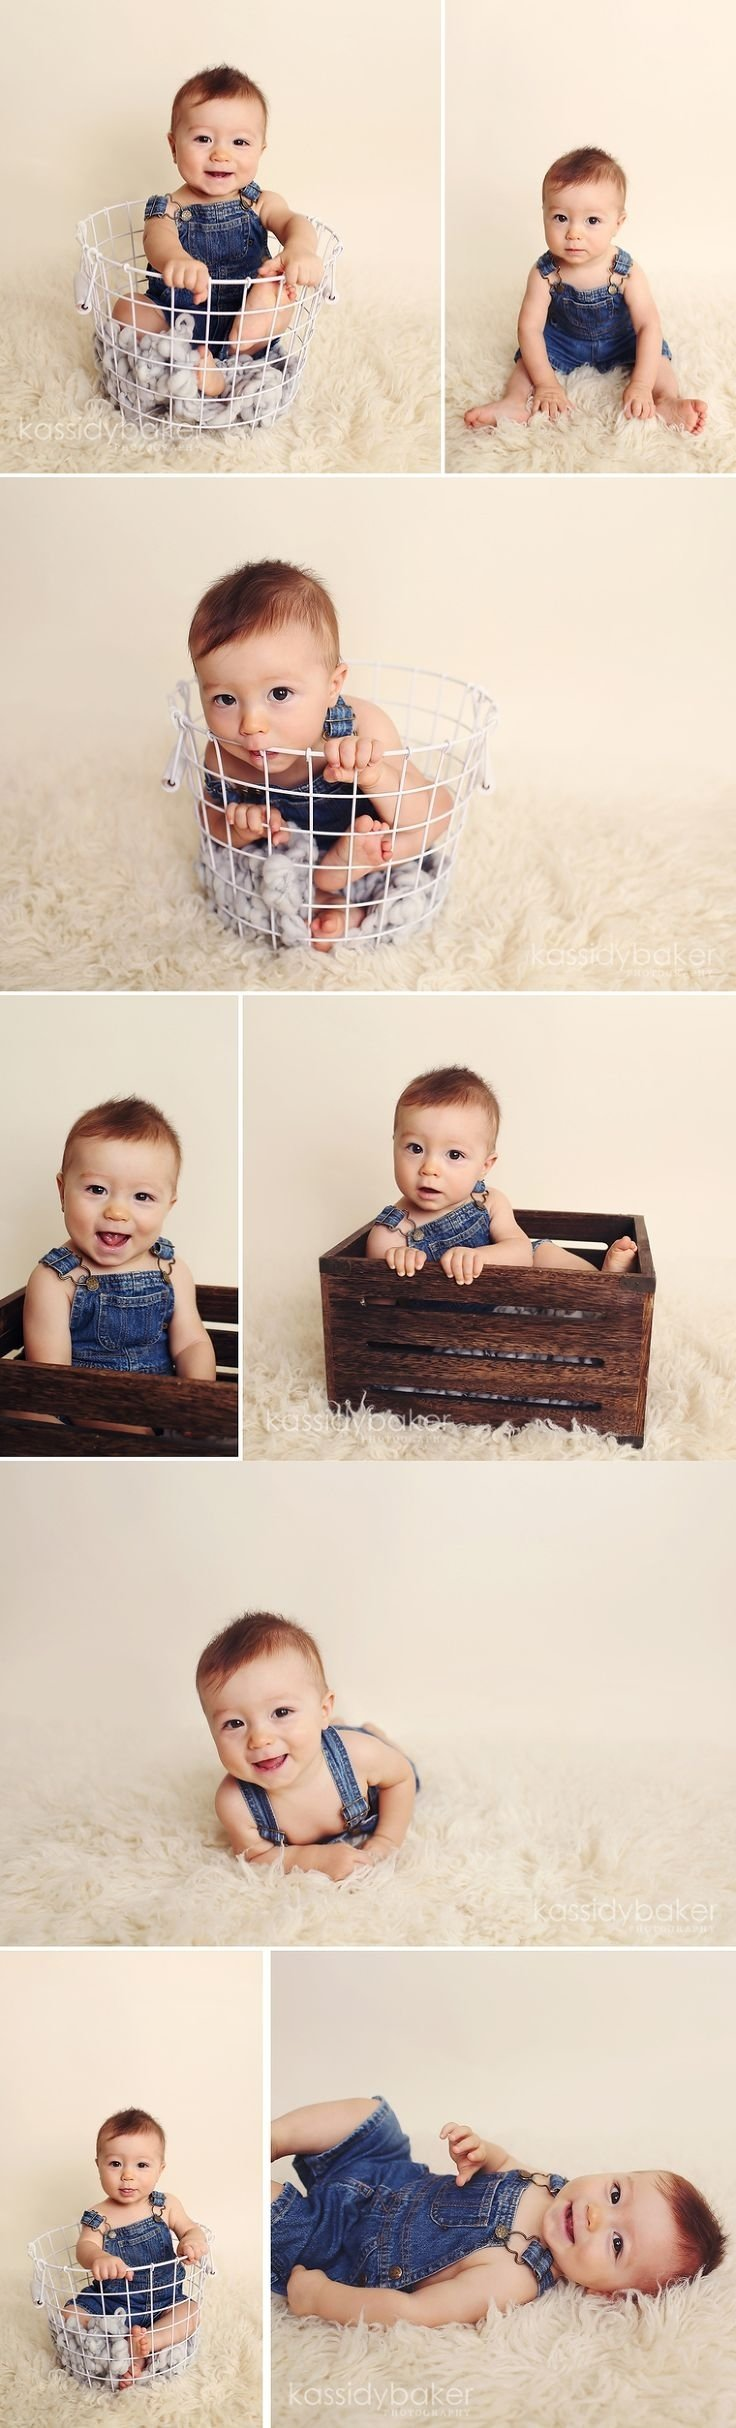 10 Ideal 9 Month Baby Picture Ideas 271 best photography babies images on pinterest baby photos 2020